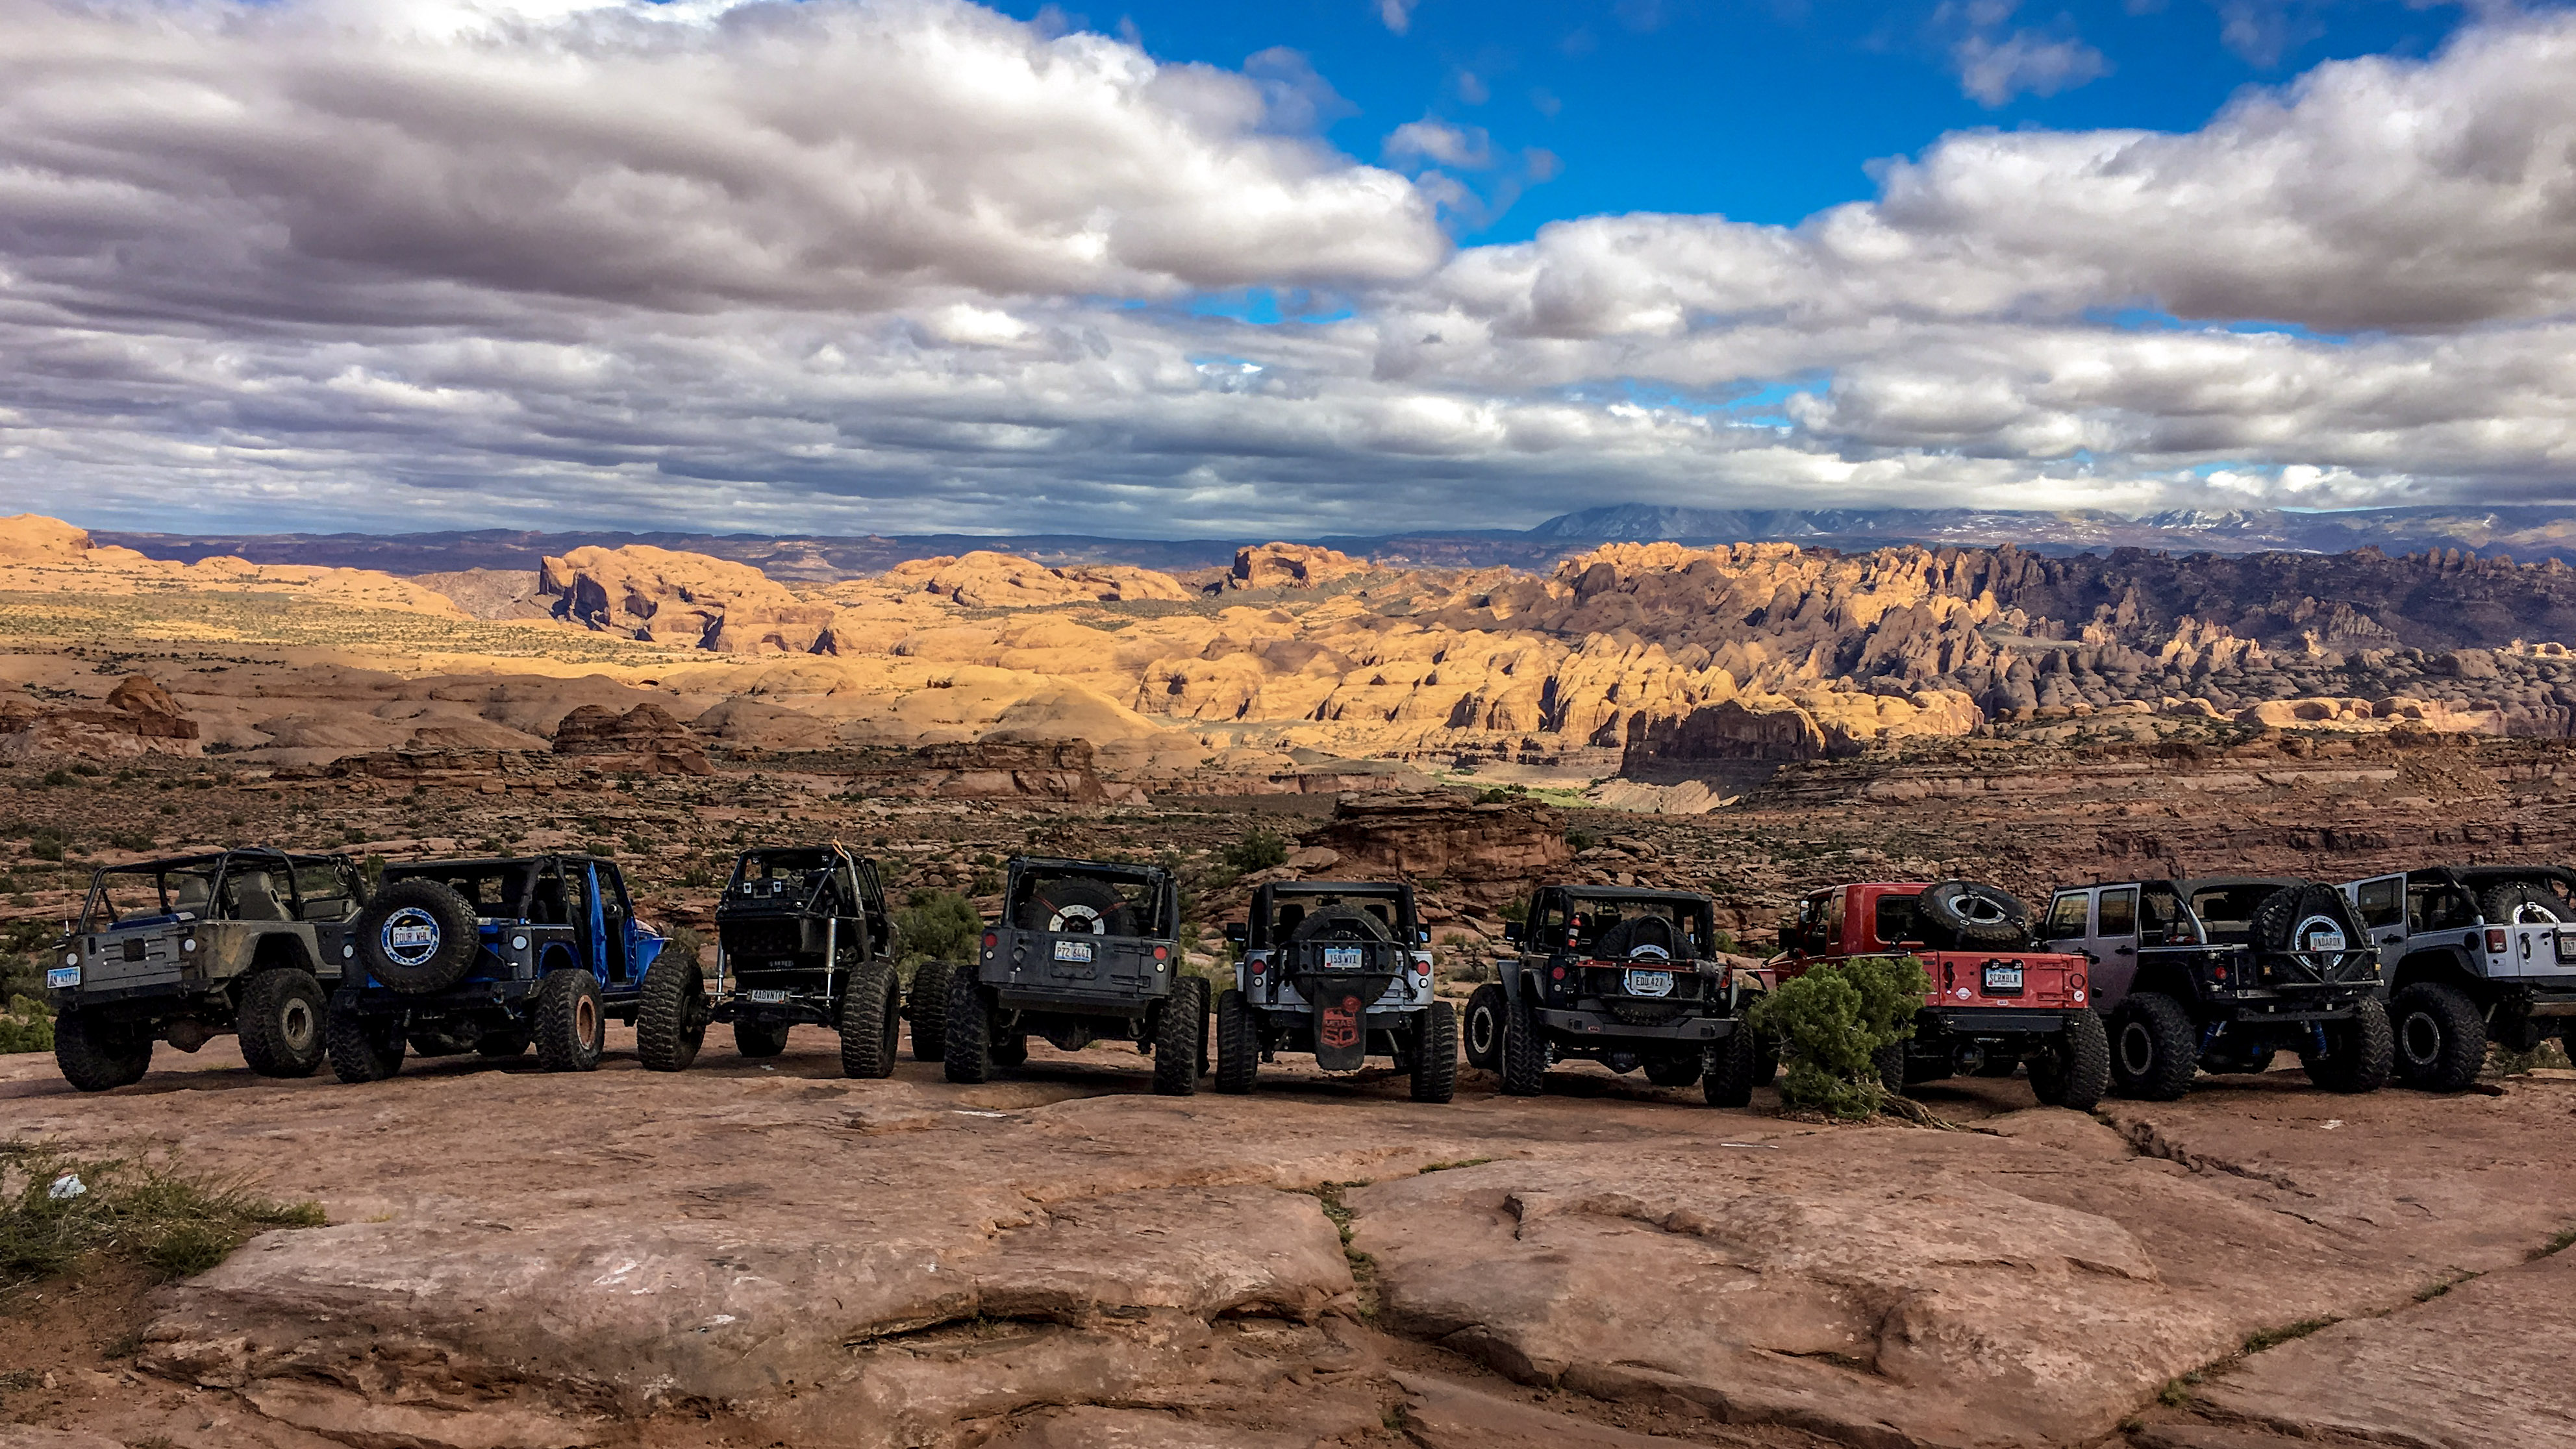 Group of jeeps overlooking Moab